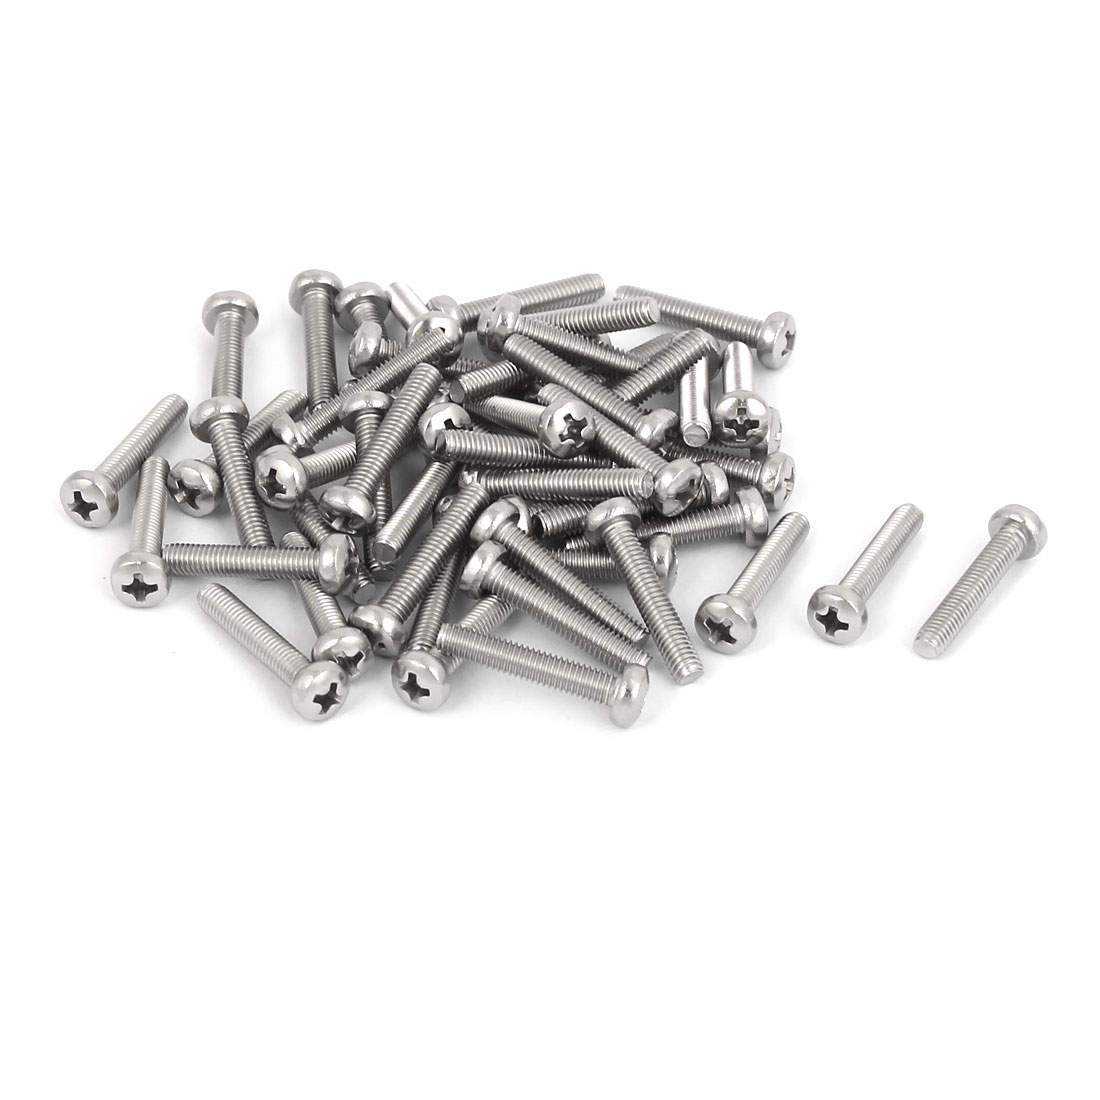 50 Pcs M3x16mm 316 Stainless Steel Metric Phillips Pan Head Machine Screws Bolts